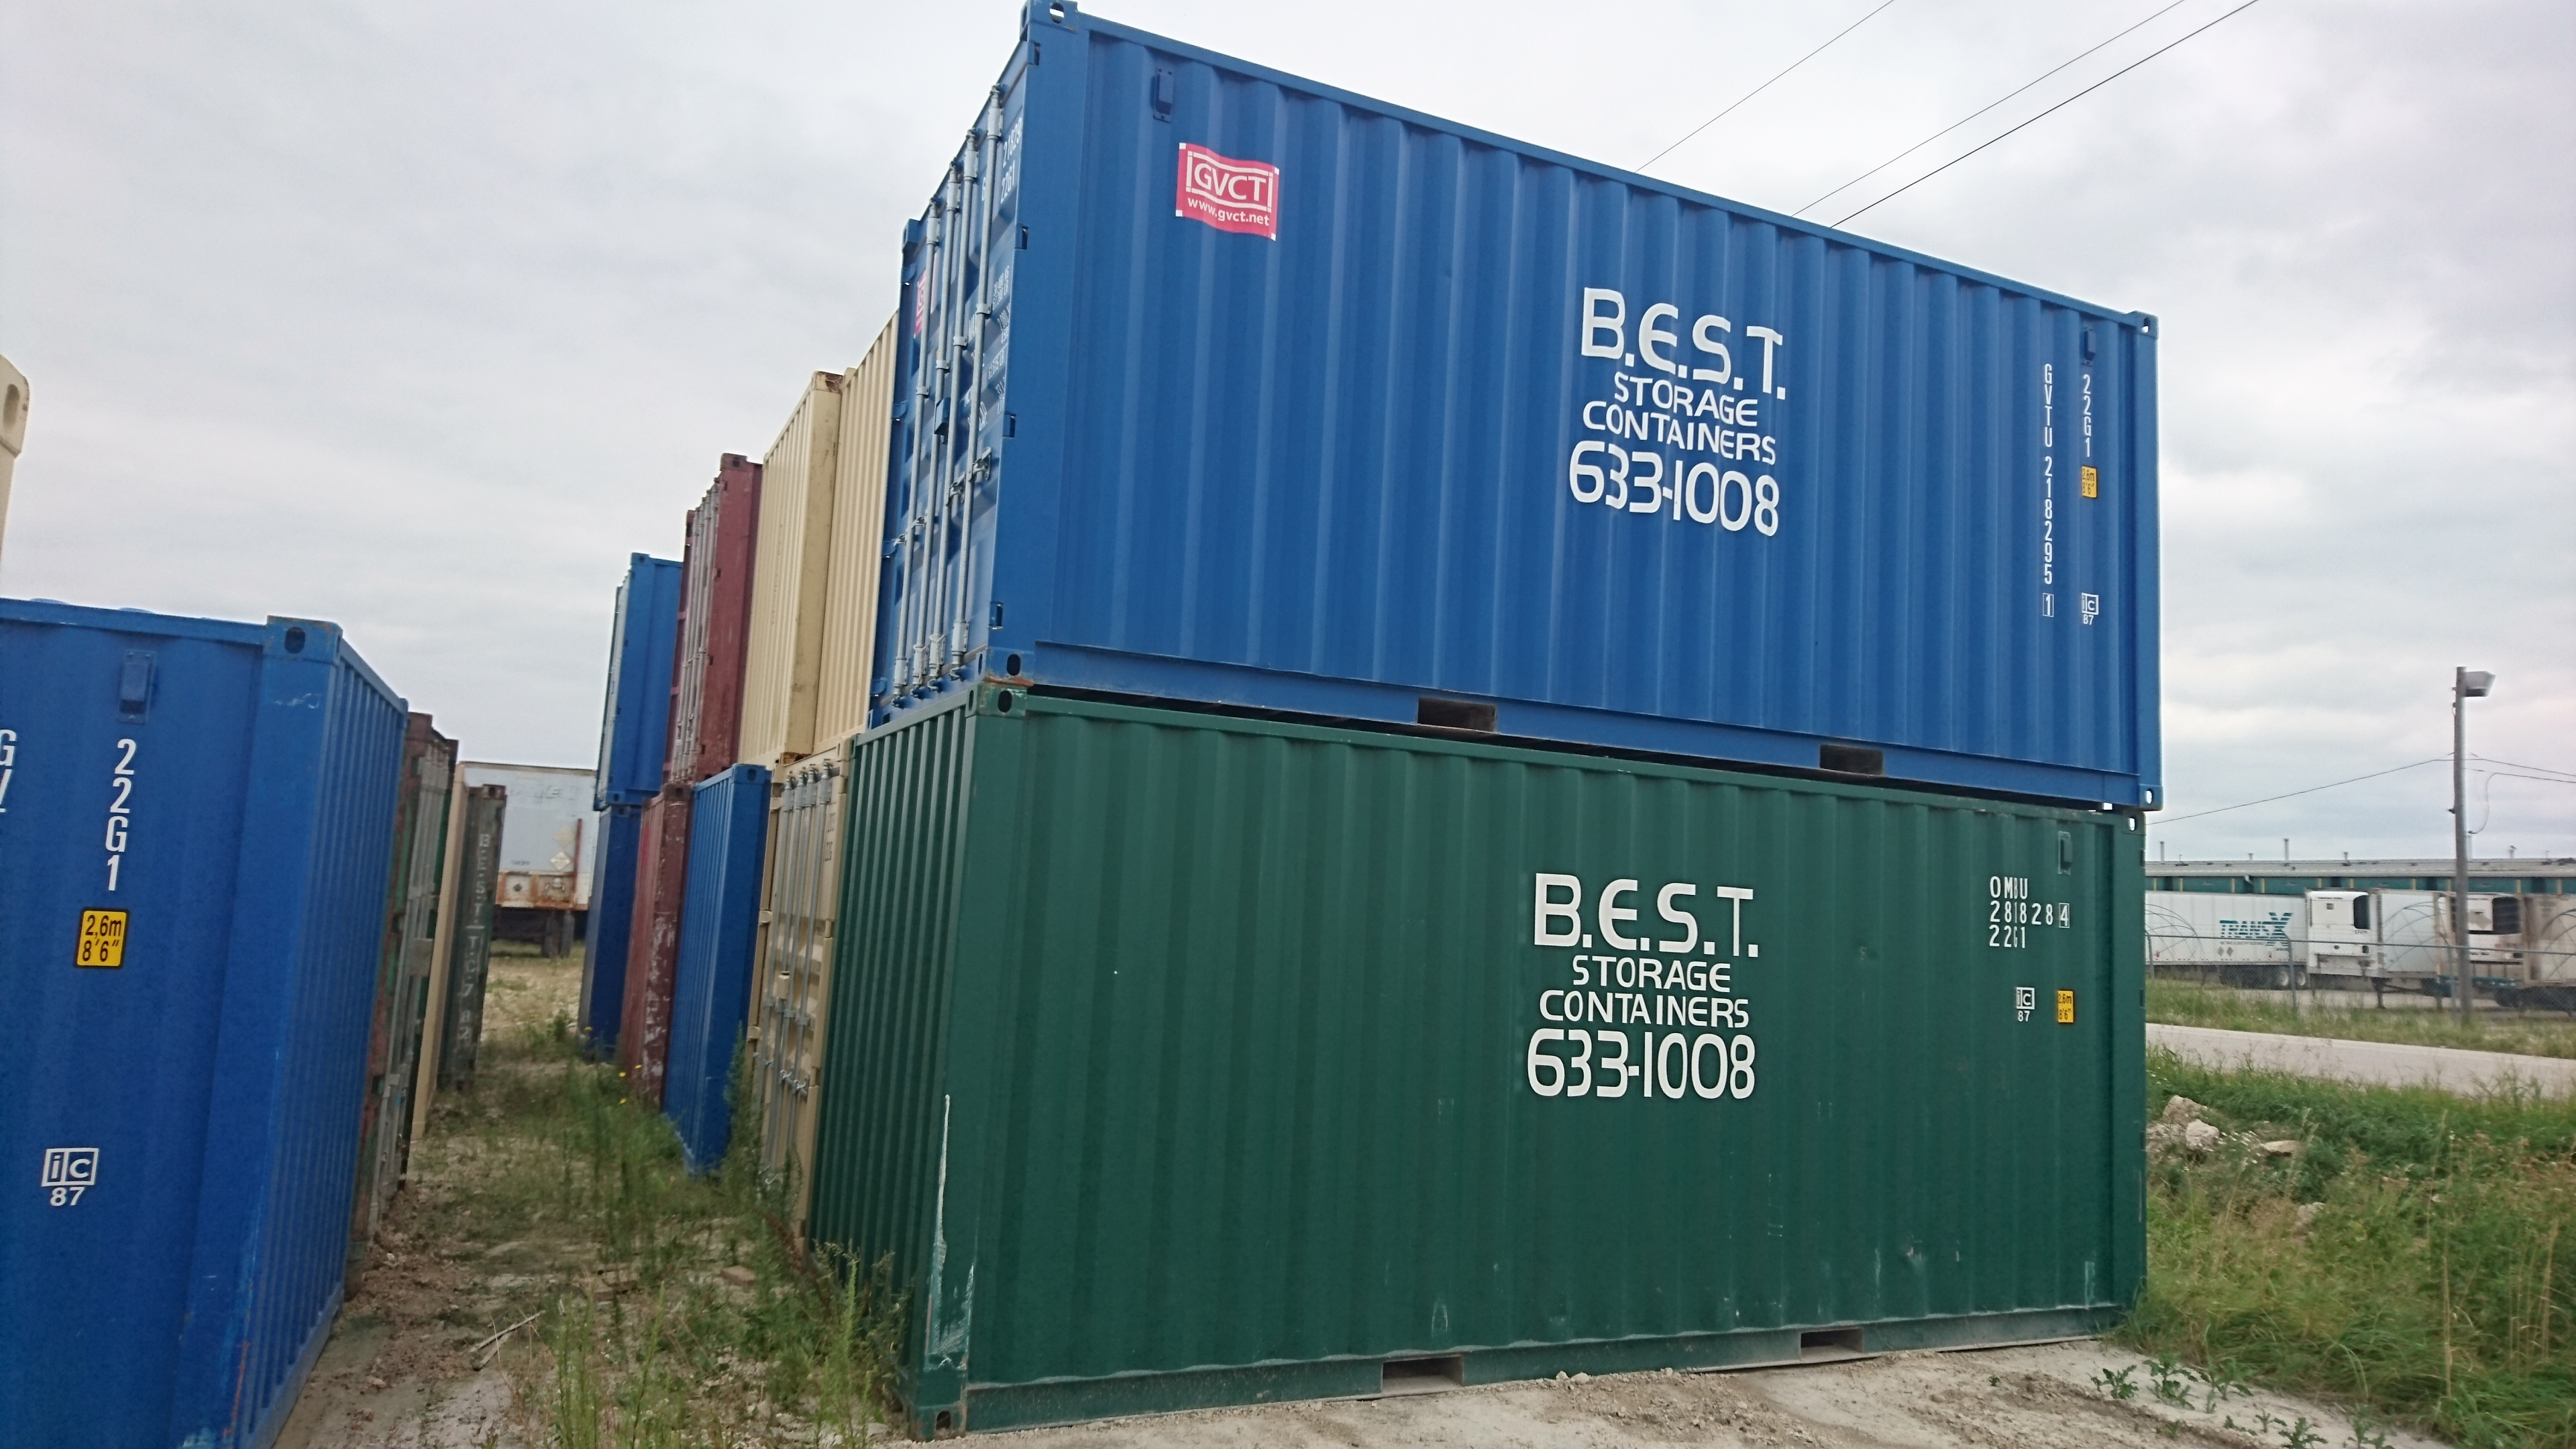 20 ft storage conainer sales and rentals - Storage Containers For Sale